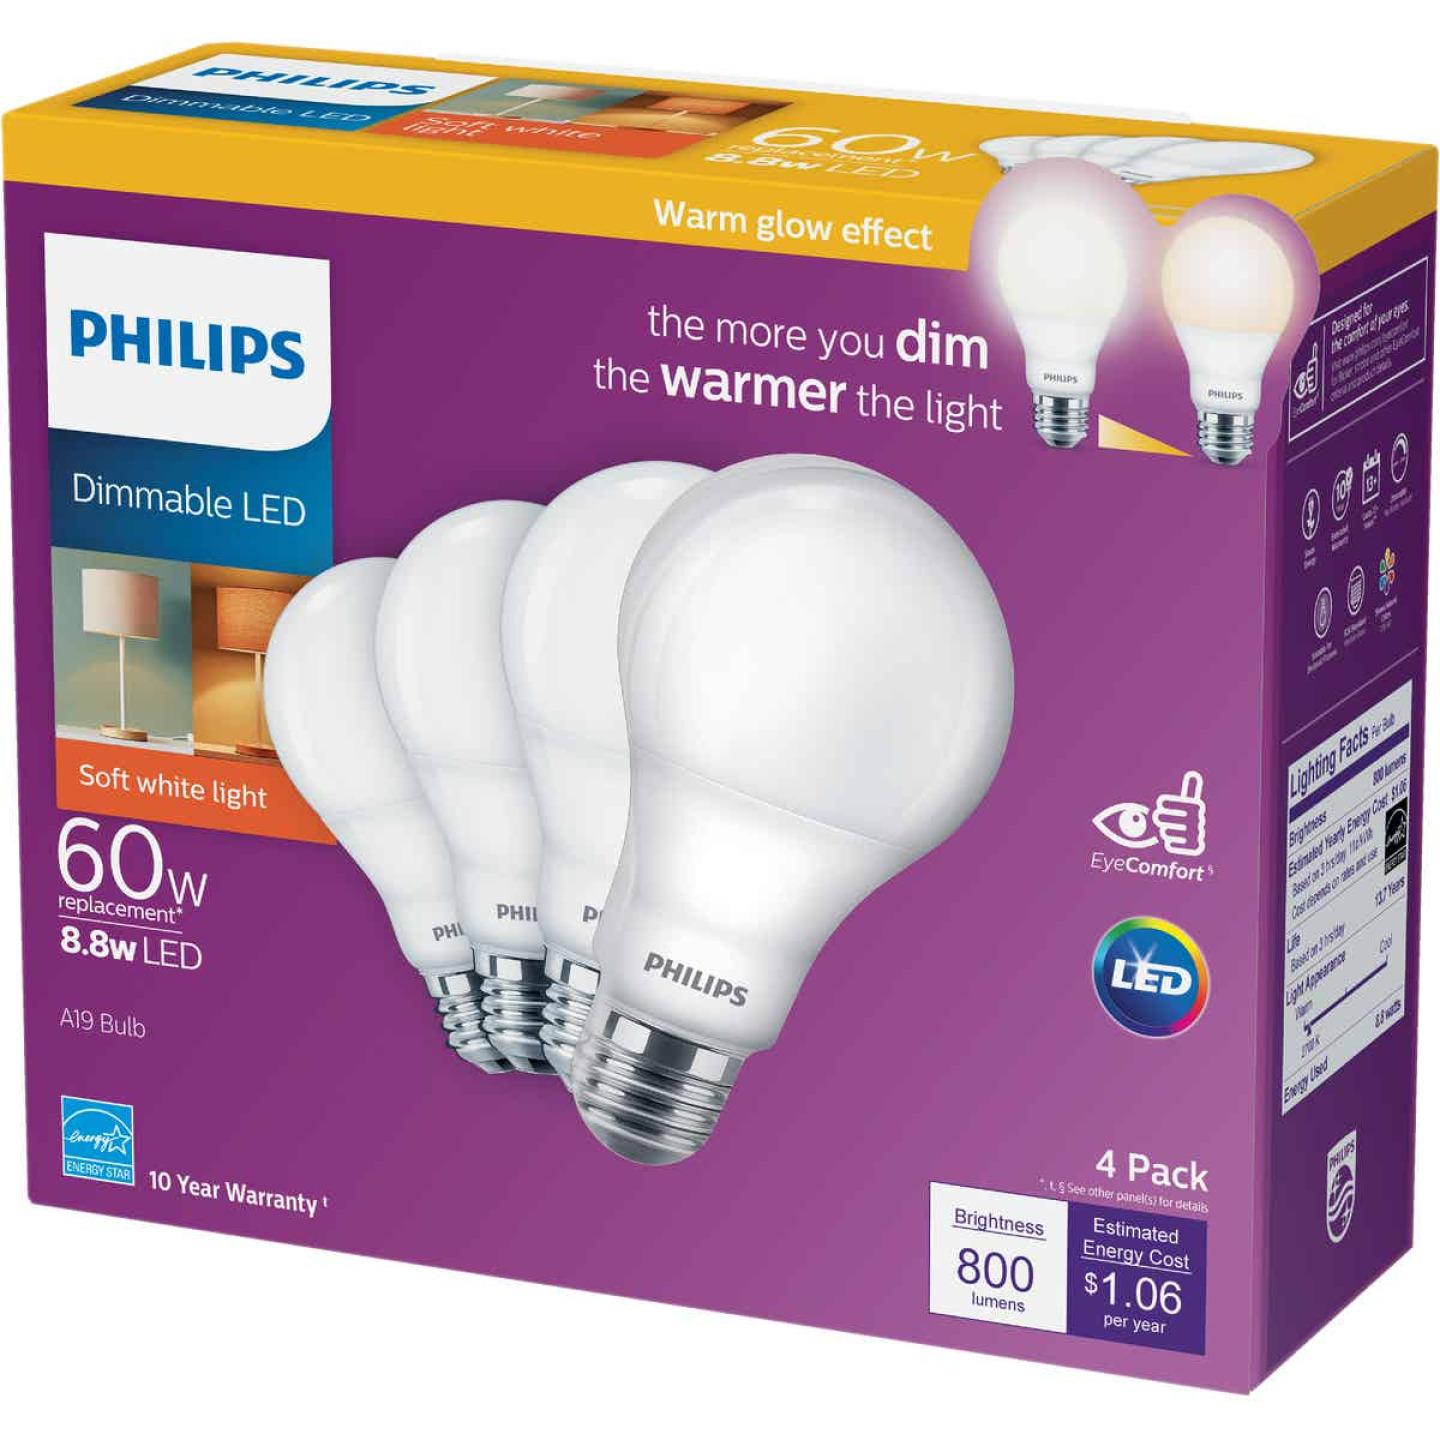 Philips Warm Glow 60W Equivalent Soft White A19 Medium Dimmable LED Light Bulb (4-Pack) Image 2